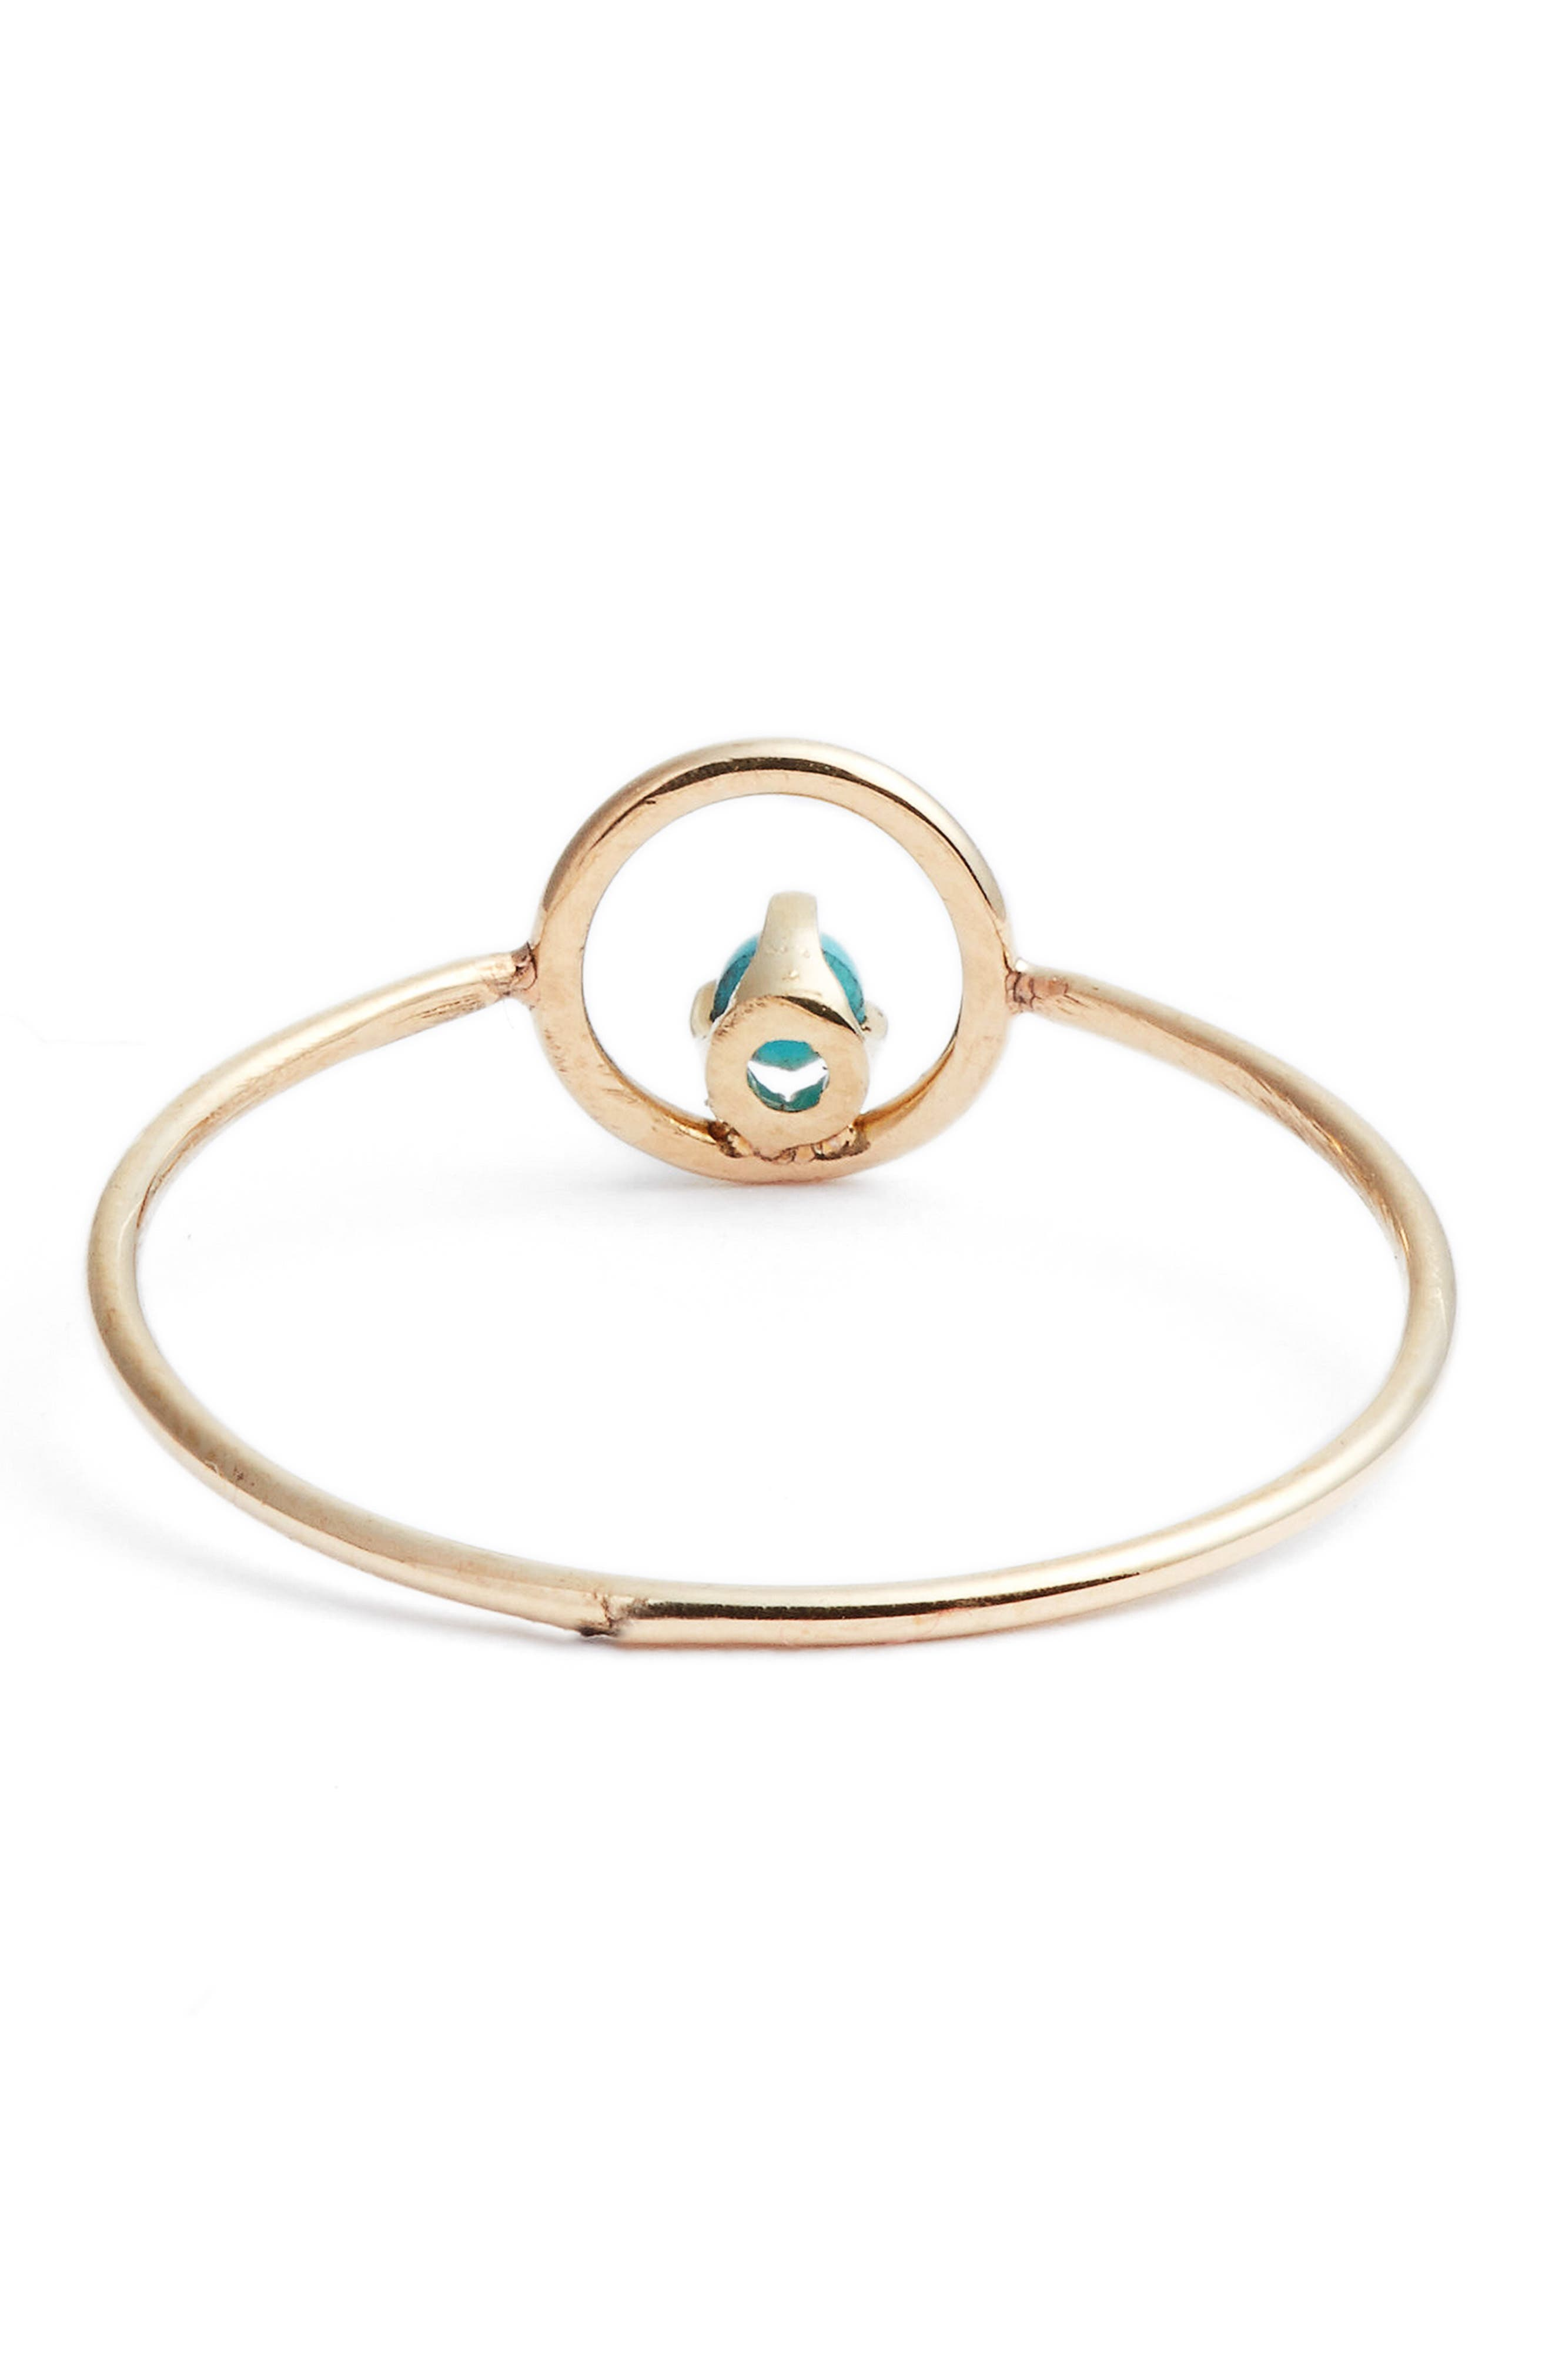 Turquoise Circle Ring,                             Alternate thumbnail 4, color,                             Yellow Gold/ Turquoise